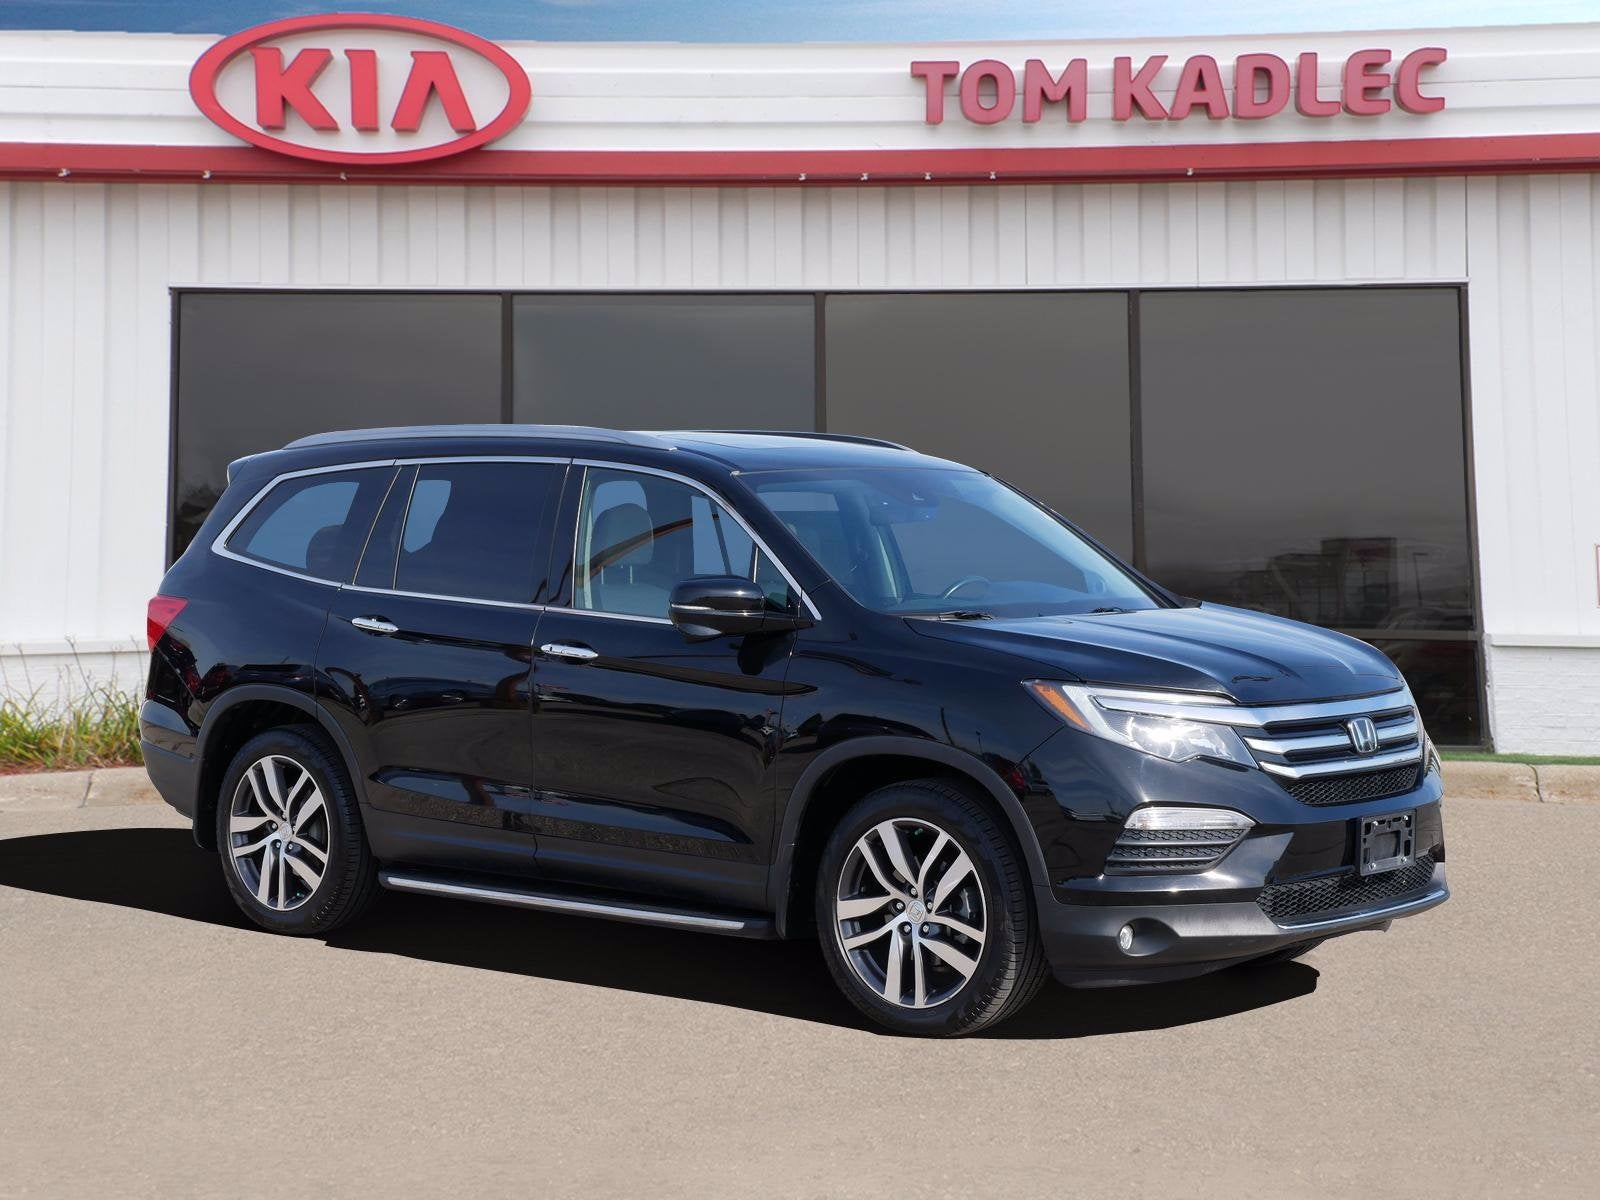 Used 2017 Honda Pilot Touring with VIN 5FNYF6H97HB006592 for sale in Rochester, Minnesota